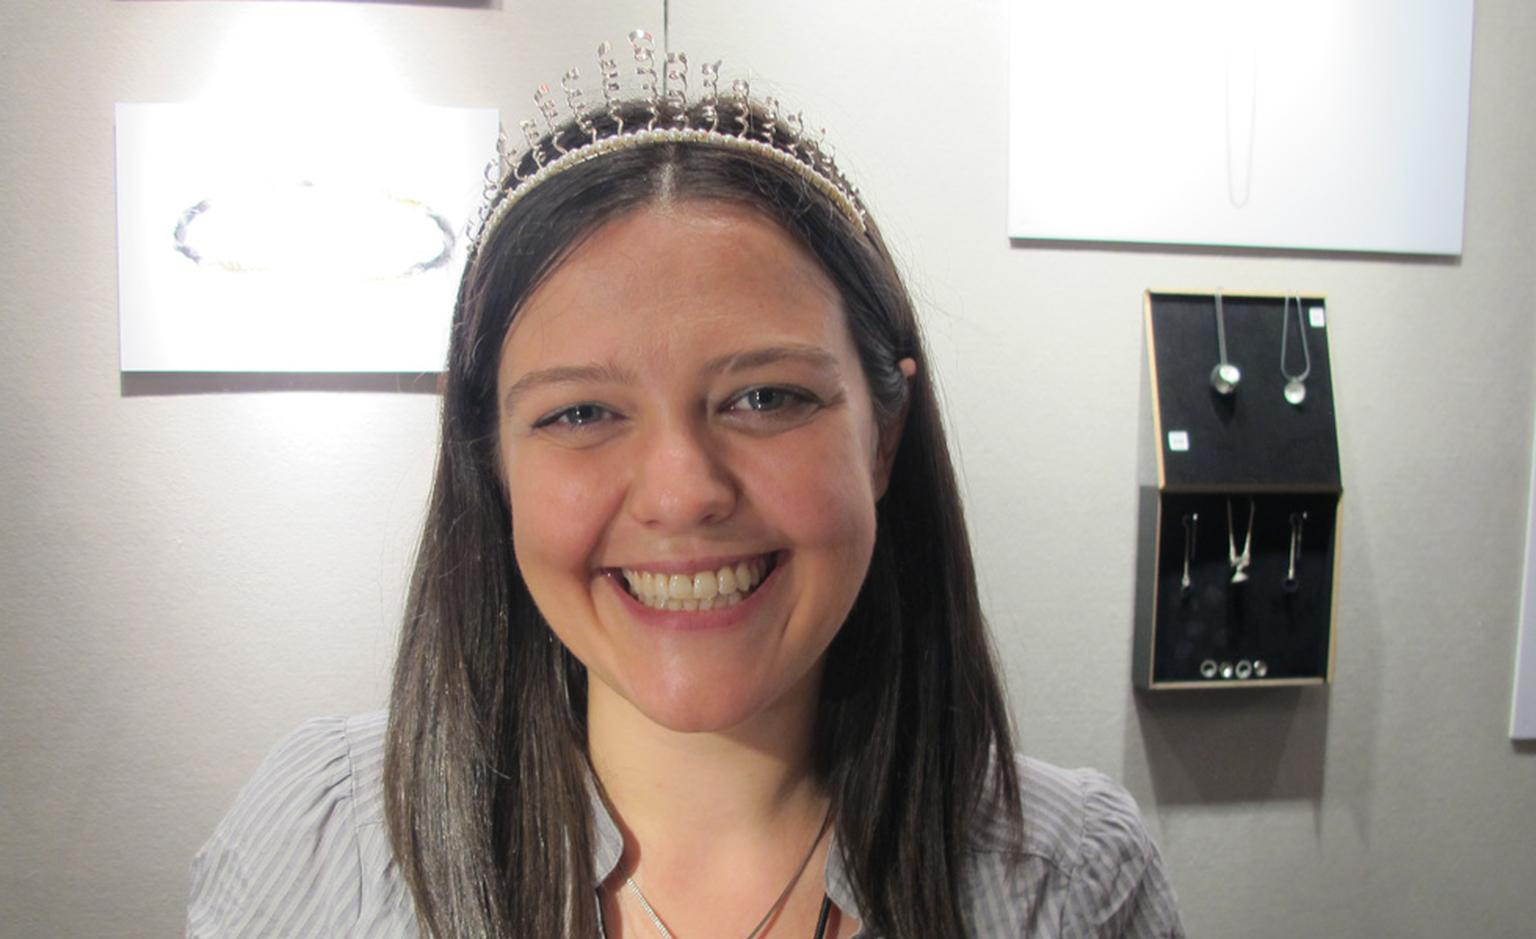 Jenny Deans shows her pretty silver and pearl bridal tiara designed for her own wedding. Yours for £600.